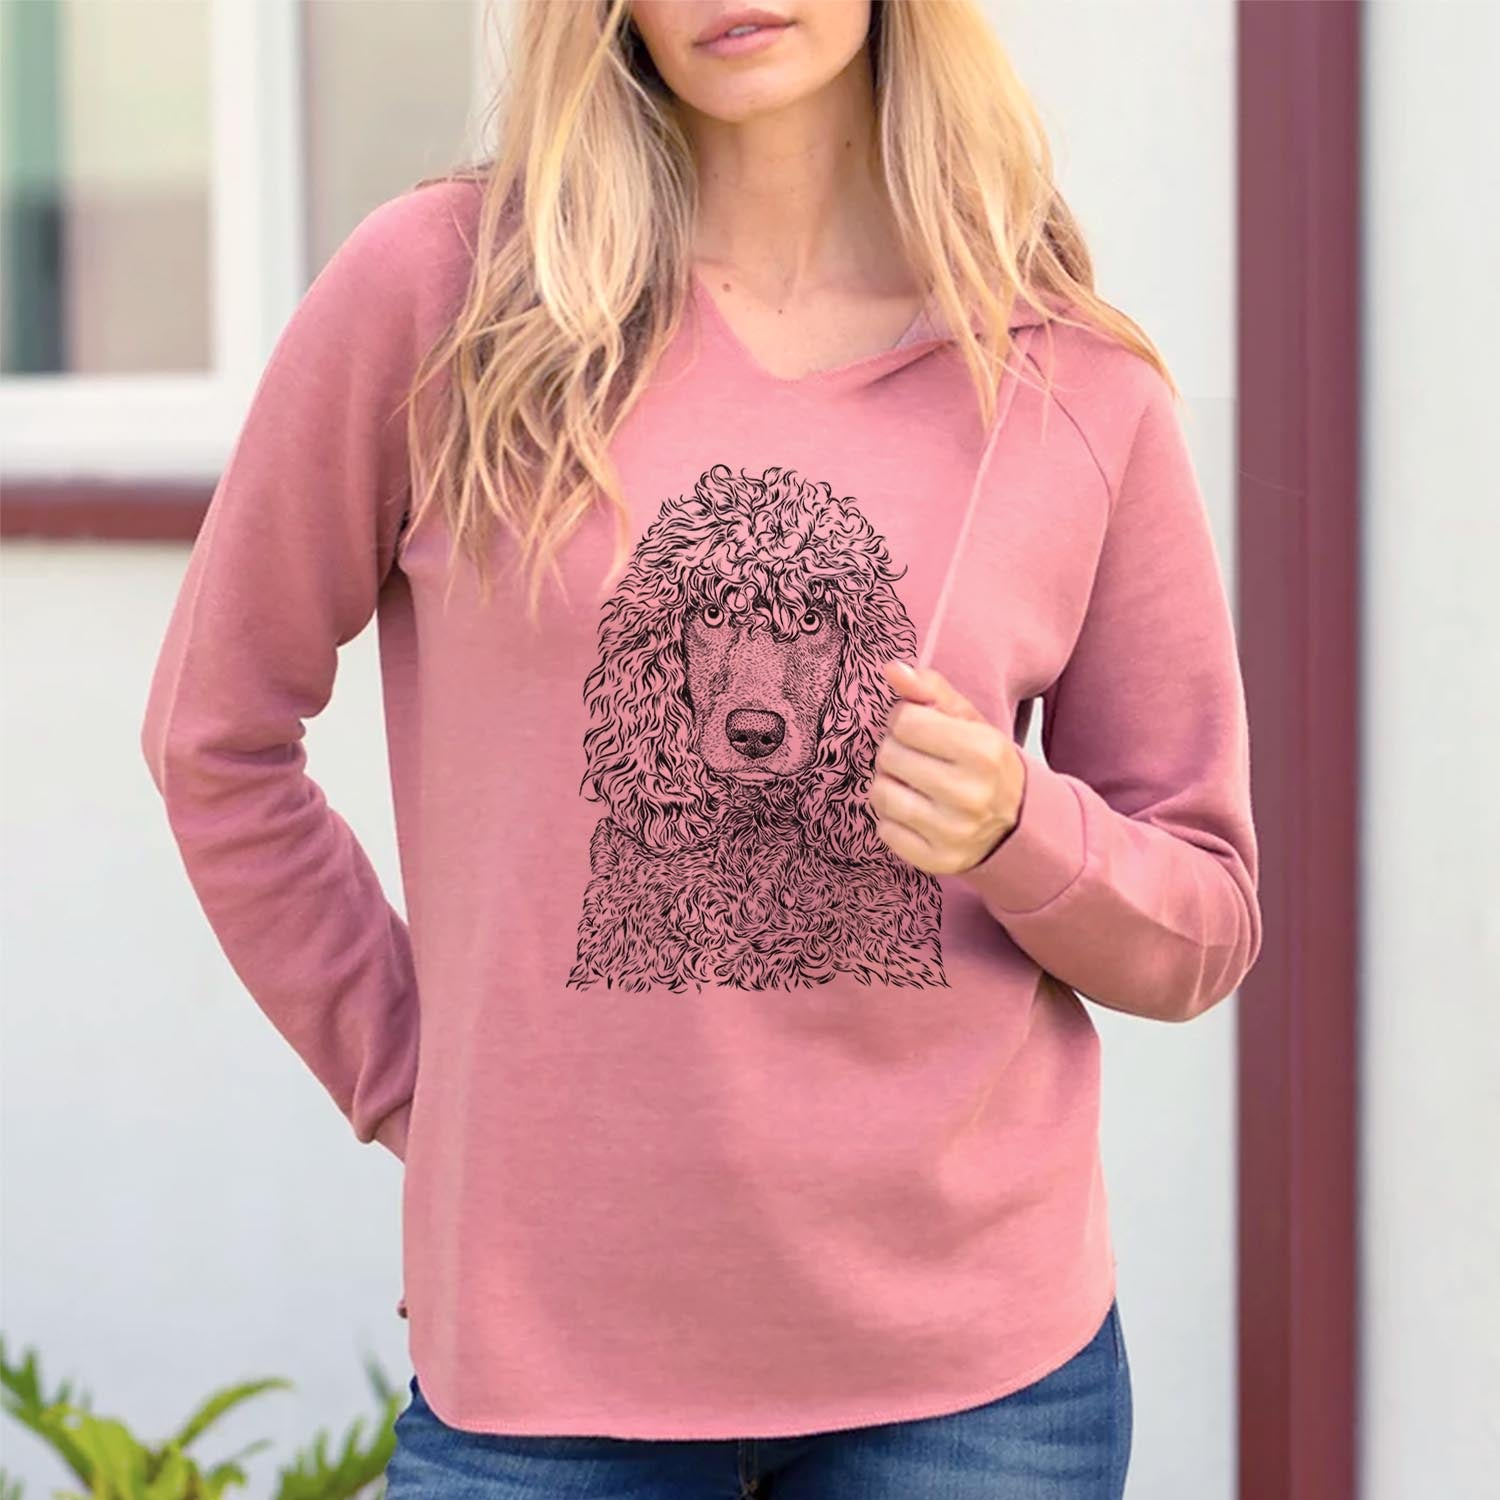 Shilo the Irish Water Spaniel - Cali Wave Hooded Sweatshirt